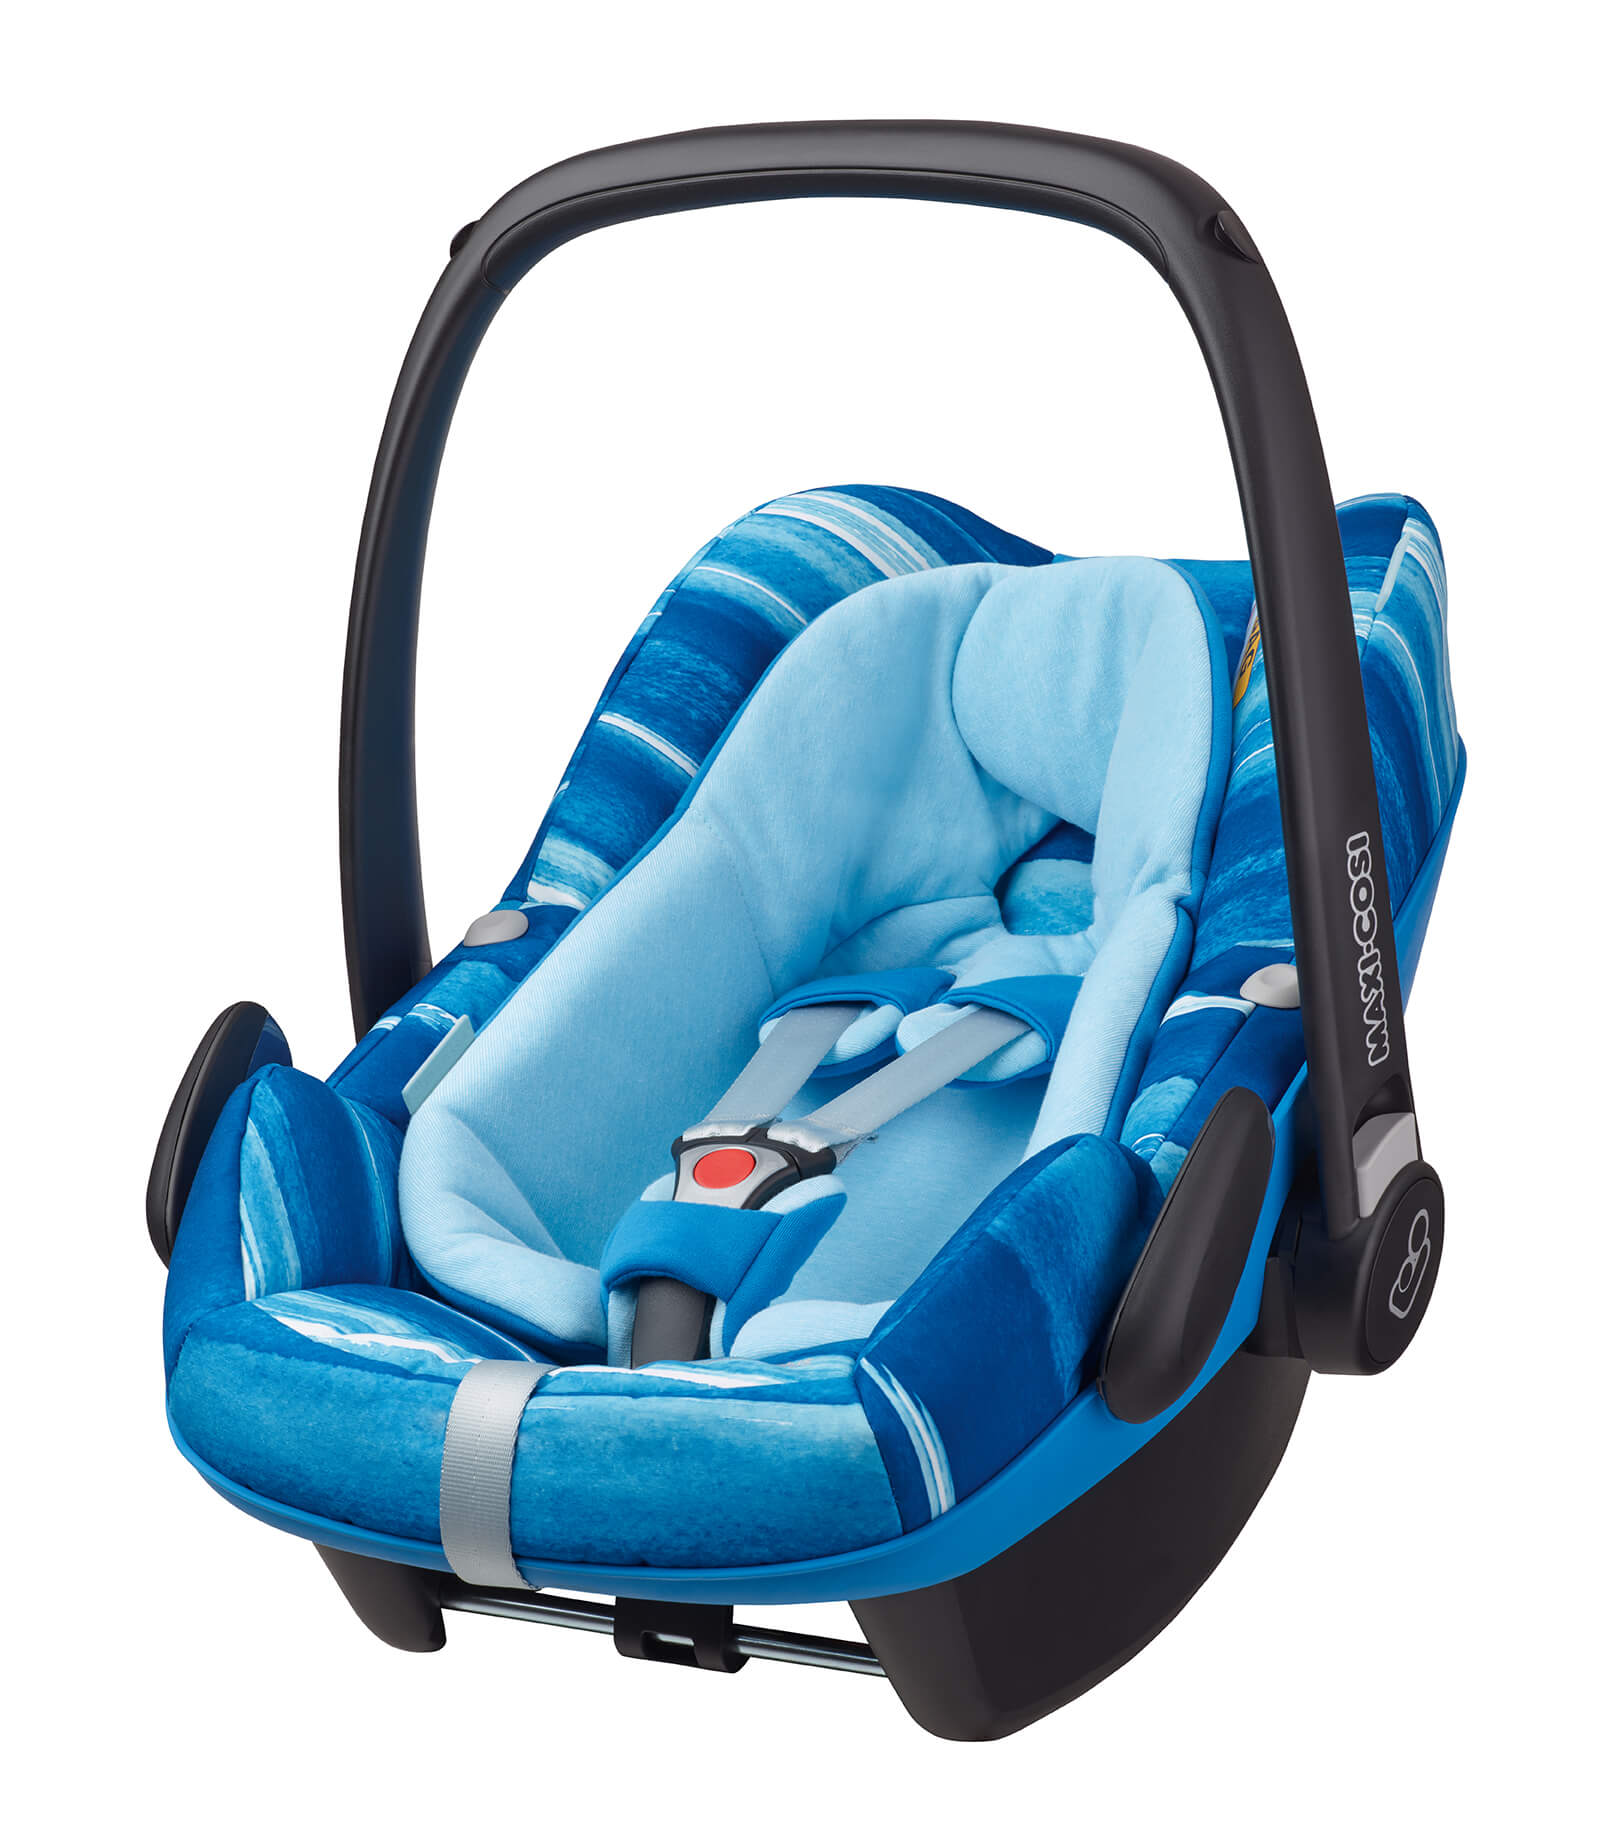 maxicosi carseat babycarseat pebbleplus 2016 blue watercolorblue 3qrt